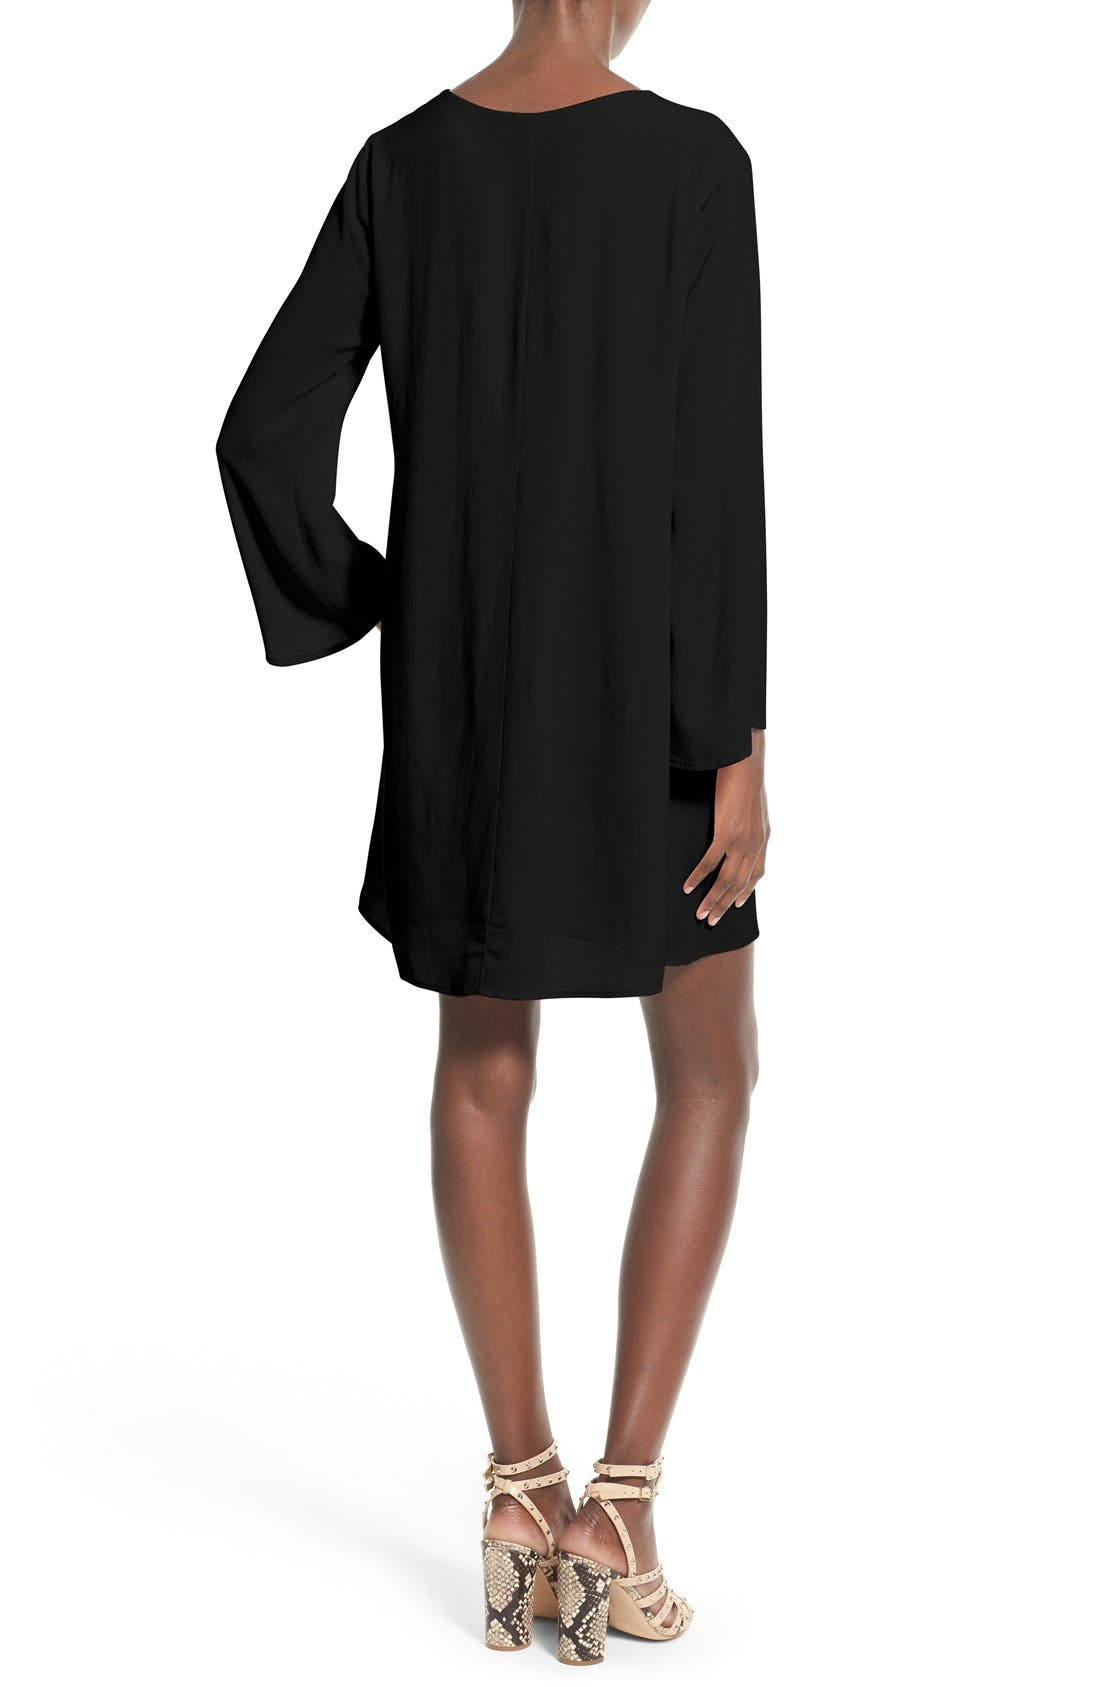 ASTR THE LABEL,                             ASTR Lace-Up Bell Sleeve Shift Dress,                             Alternate thumbnail 2, color,                             001